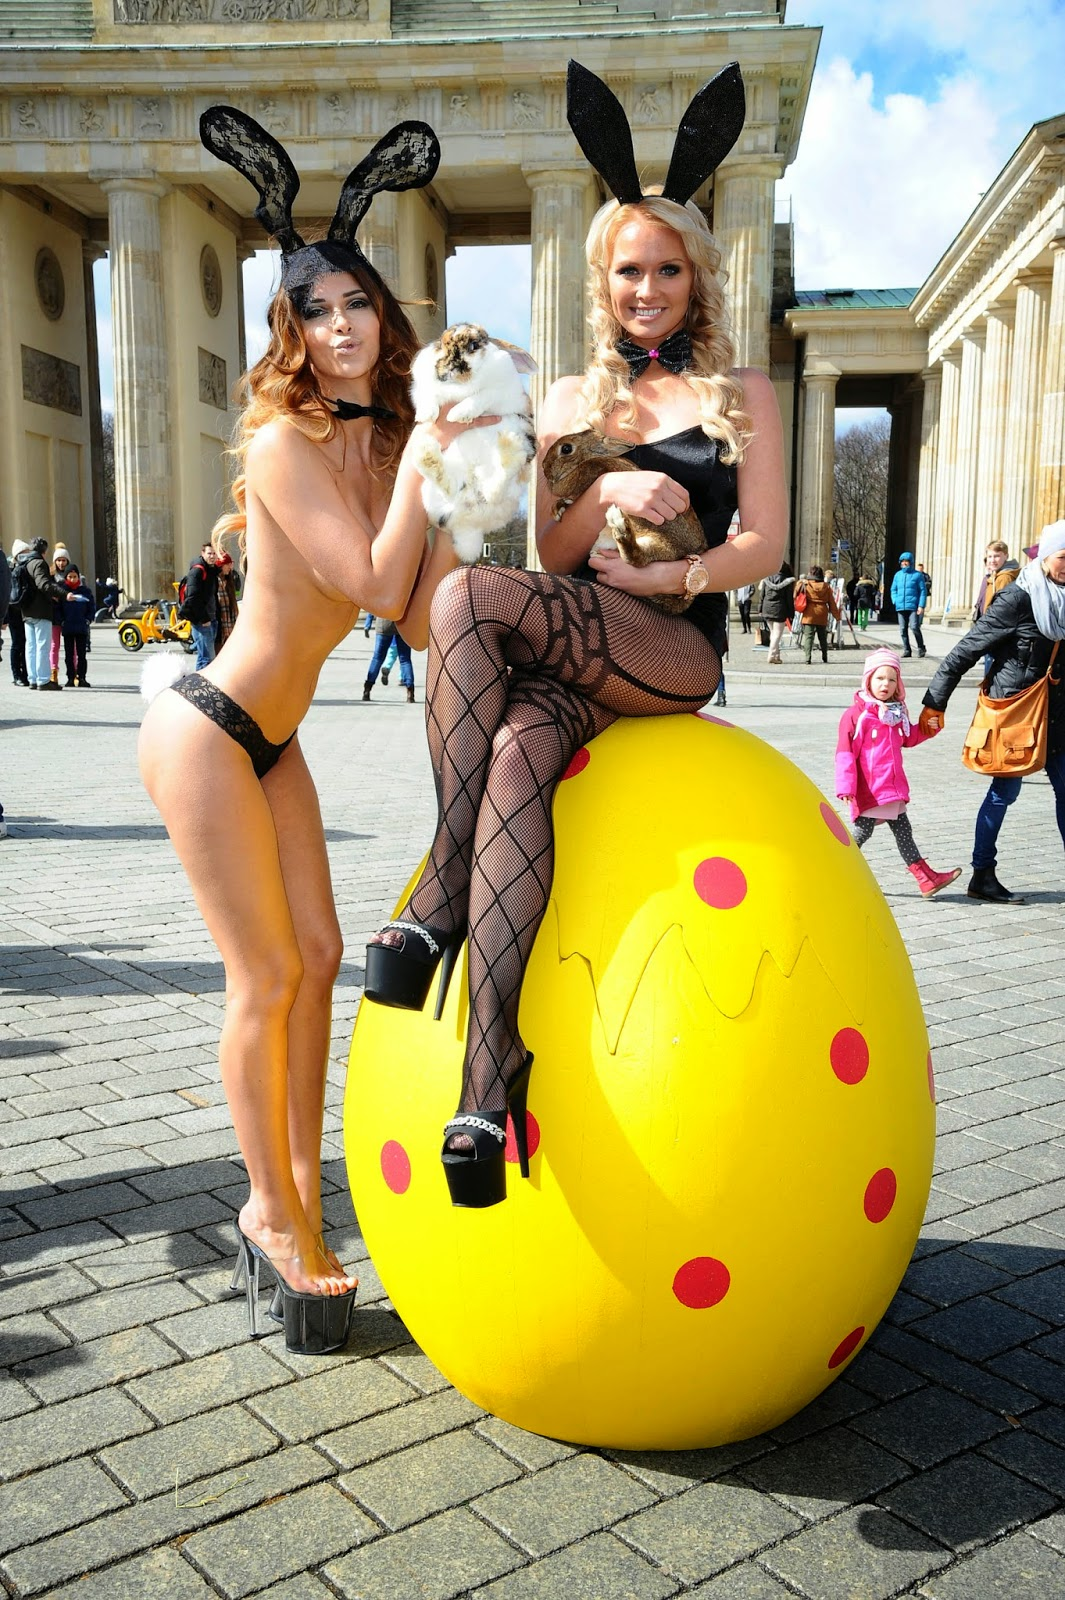 Micaela Schaefer Is The Best Dressed Easter Babe Ever!